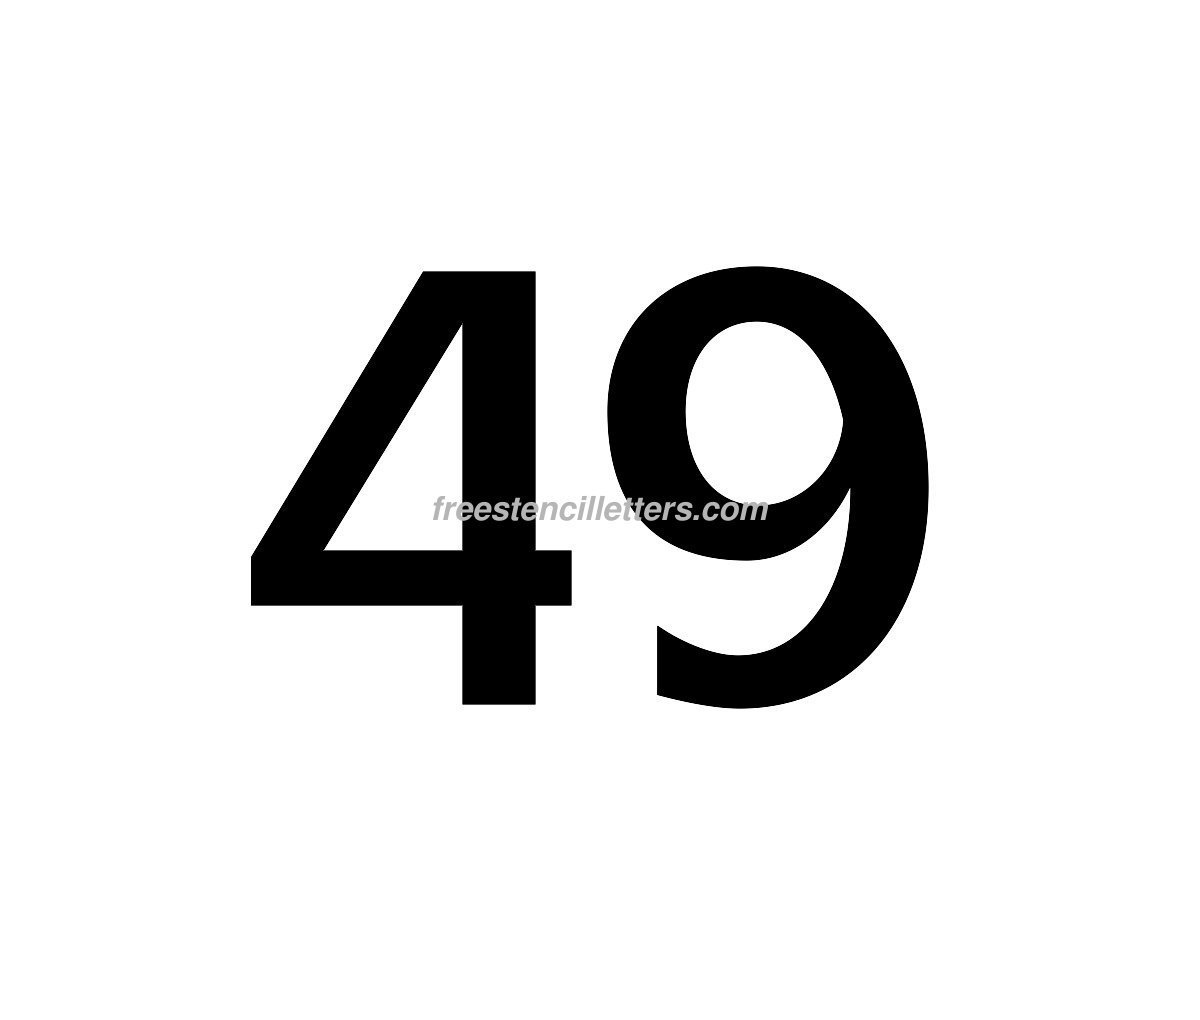 number-49  Inch Letter Stencil Template on hebrew letters printable, letter size, aerosol paint, separate letter, block letter, color printing, woodblock printing, free printable alphabet, stencil graffiti, number template, individual number, screen printing, letters printable,